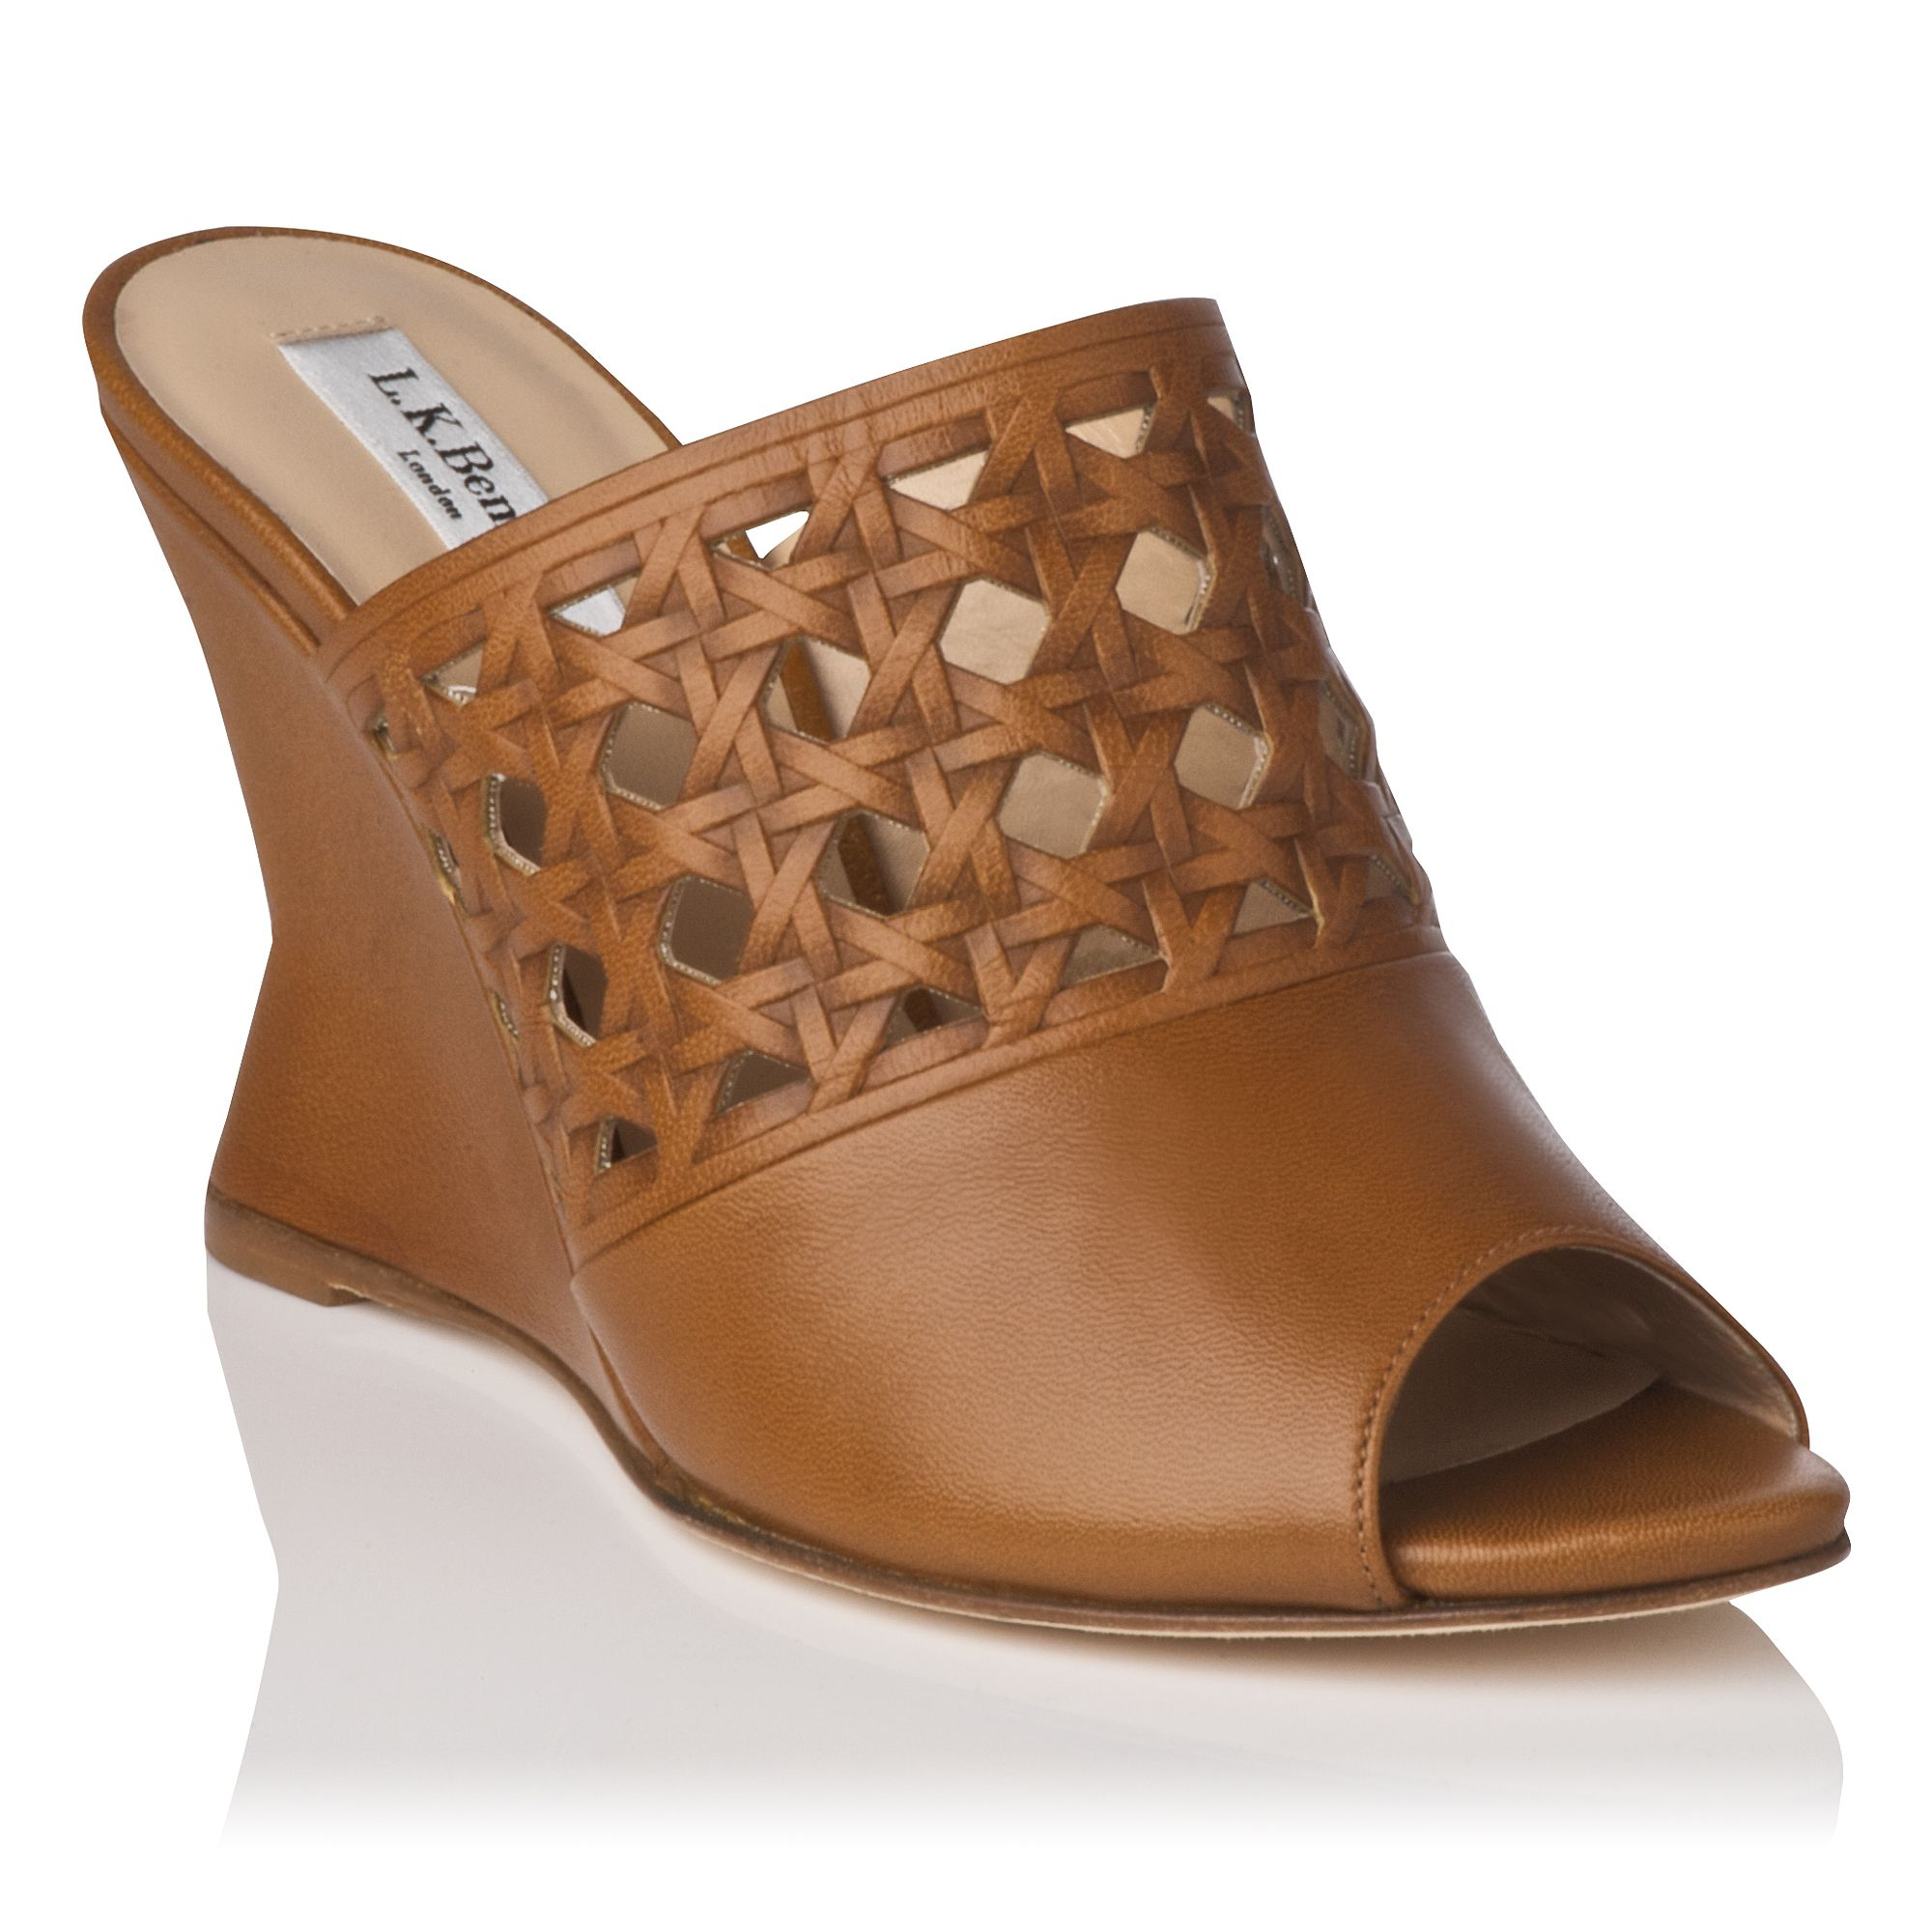 Diana single sole mule shoes